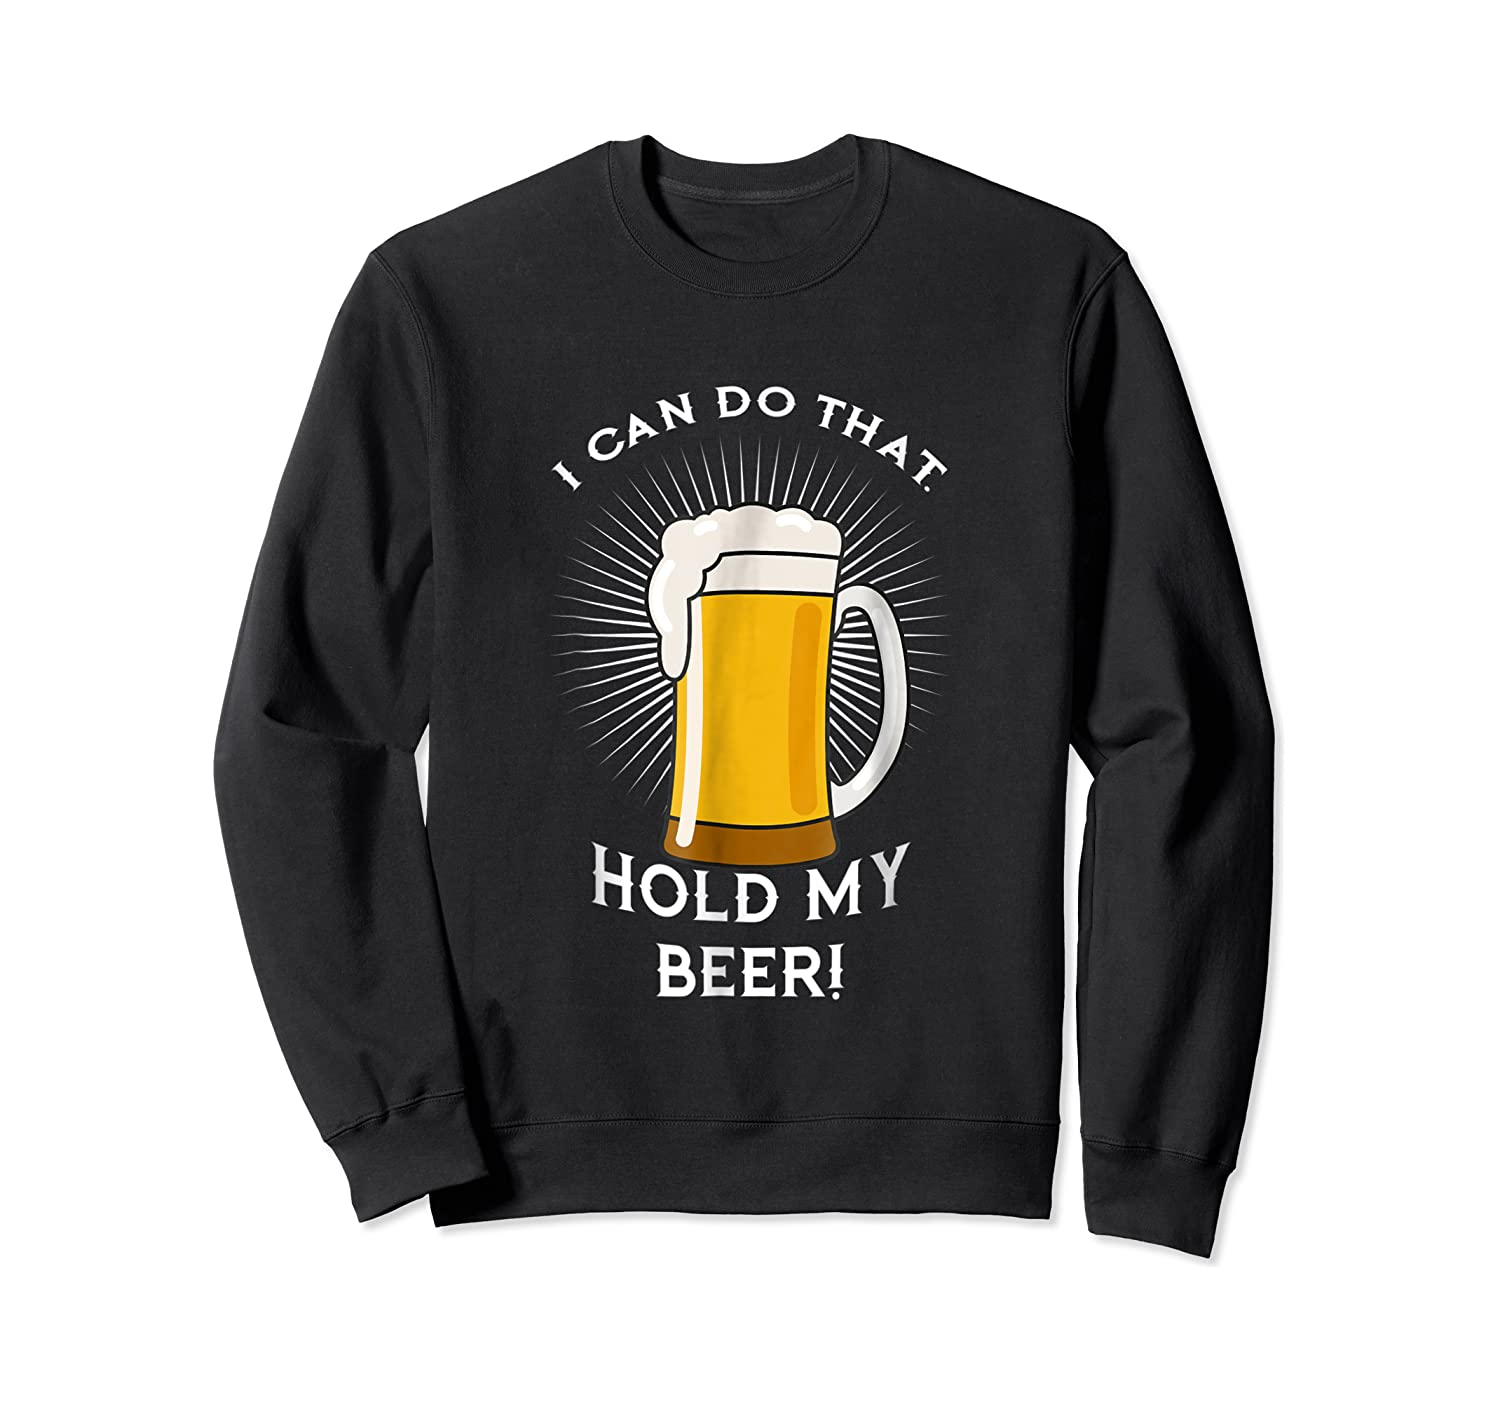 Hold My Beer Funny Humor Gag Gift T-shirt Crewneck Sweater